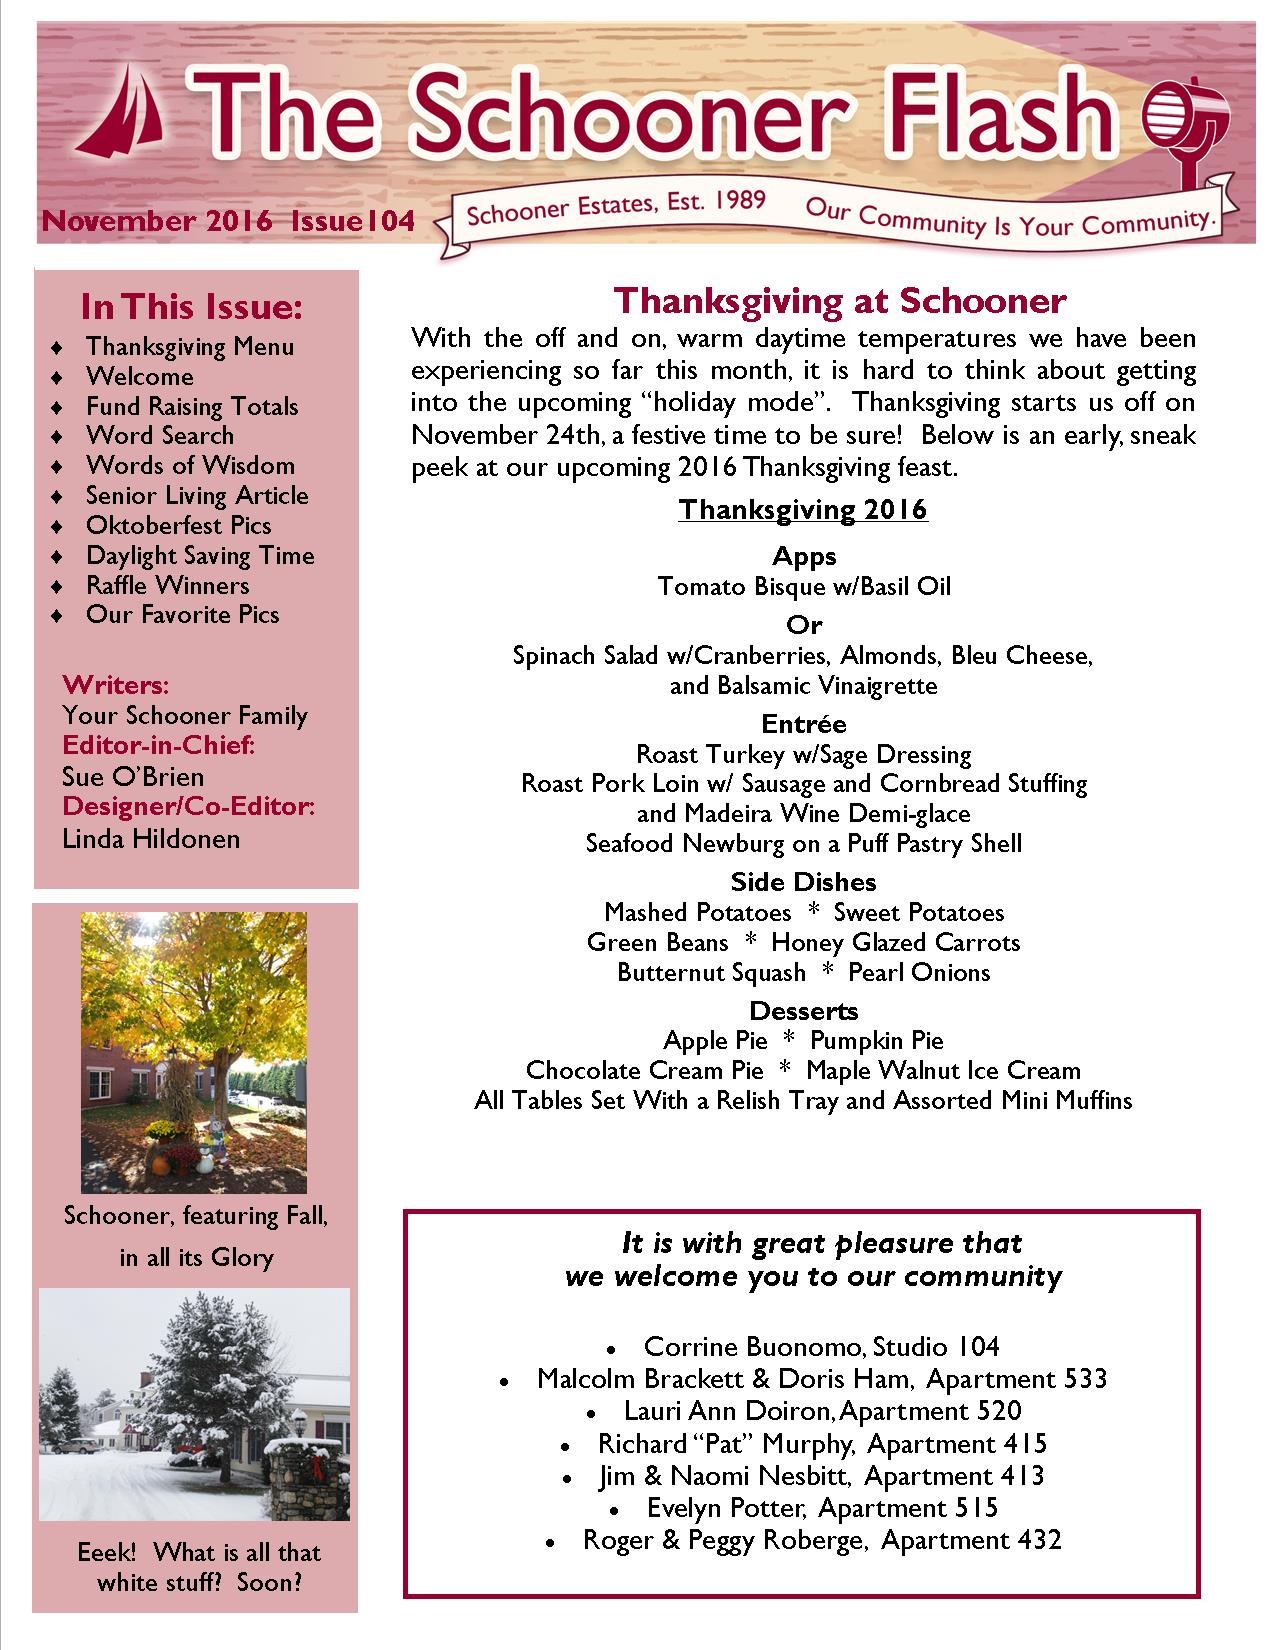 november-2016-schooner-flash-newsletter-page1